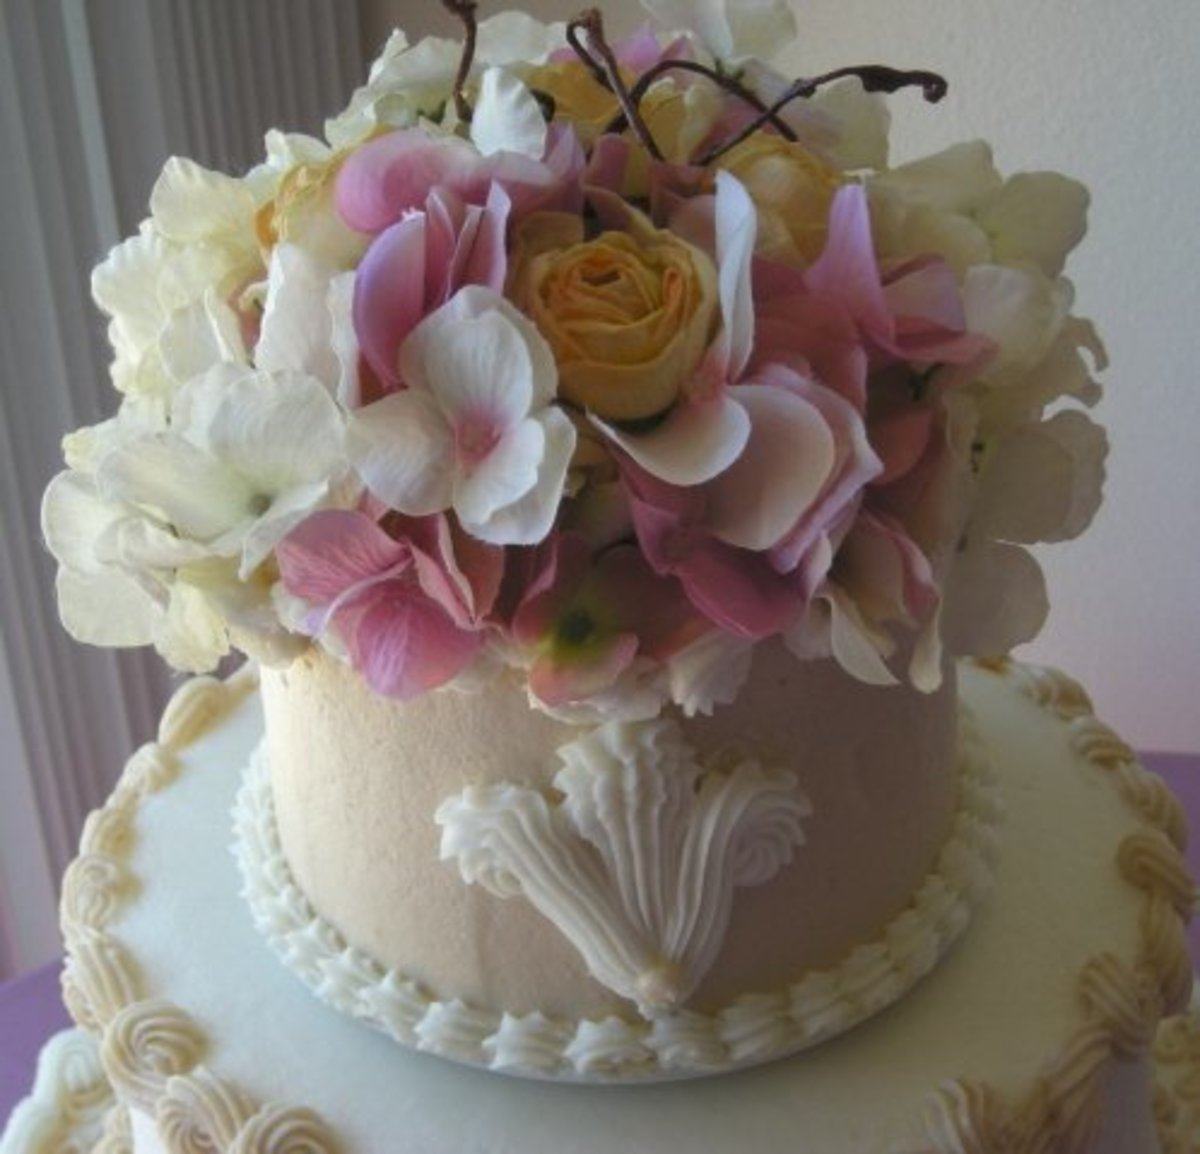 Victorian theme wedding cake [www.pepperwoodcatering.com/photo_gallery.htm]